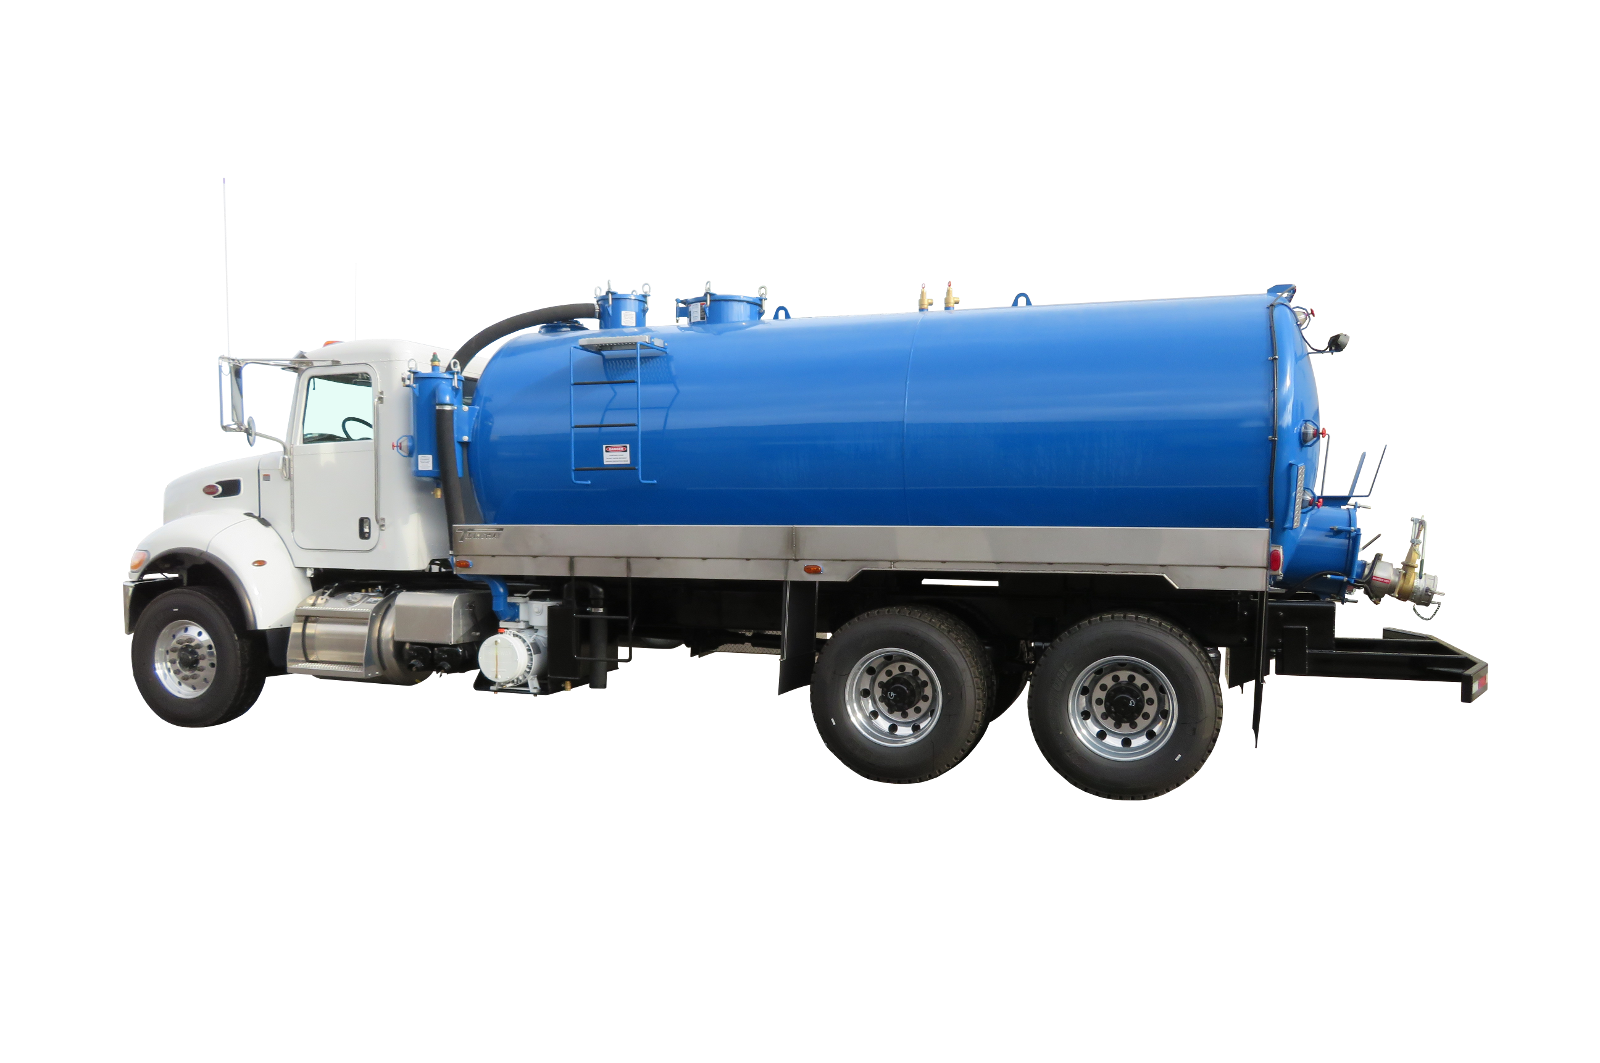 Septic Tank Pump Trucks manufactured by Transway Systems Inc